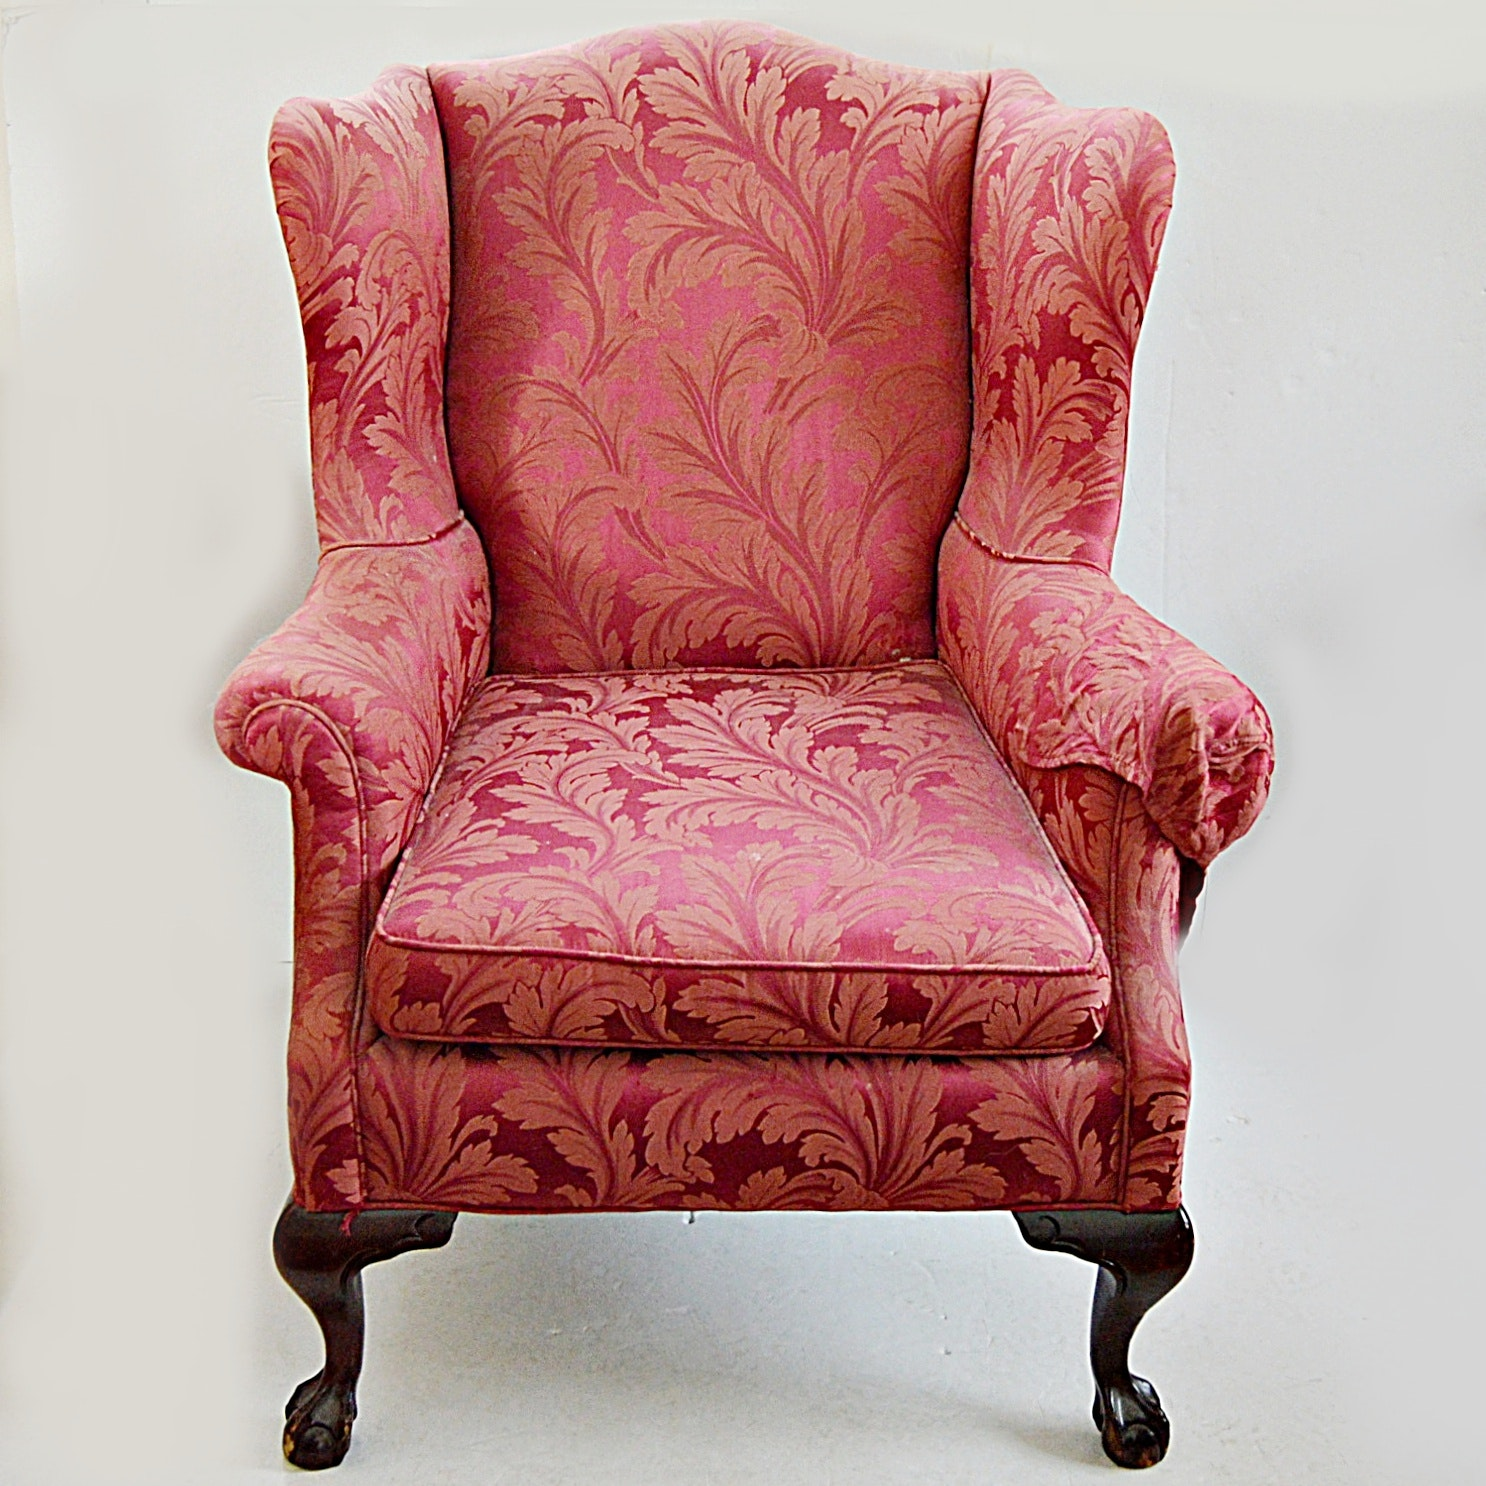 Chippendale Style Ball and Claw Wingback in Elegant Coral Foliate Upholstery